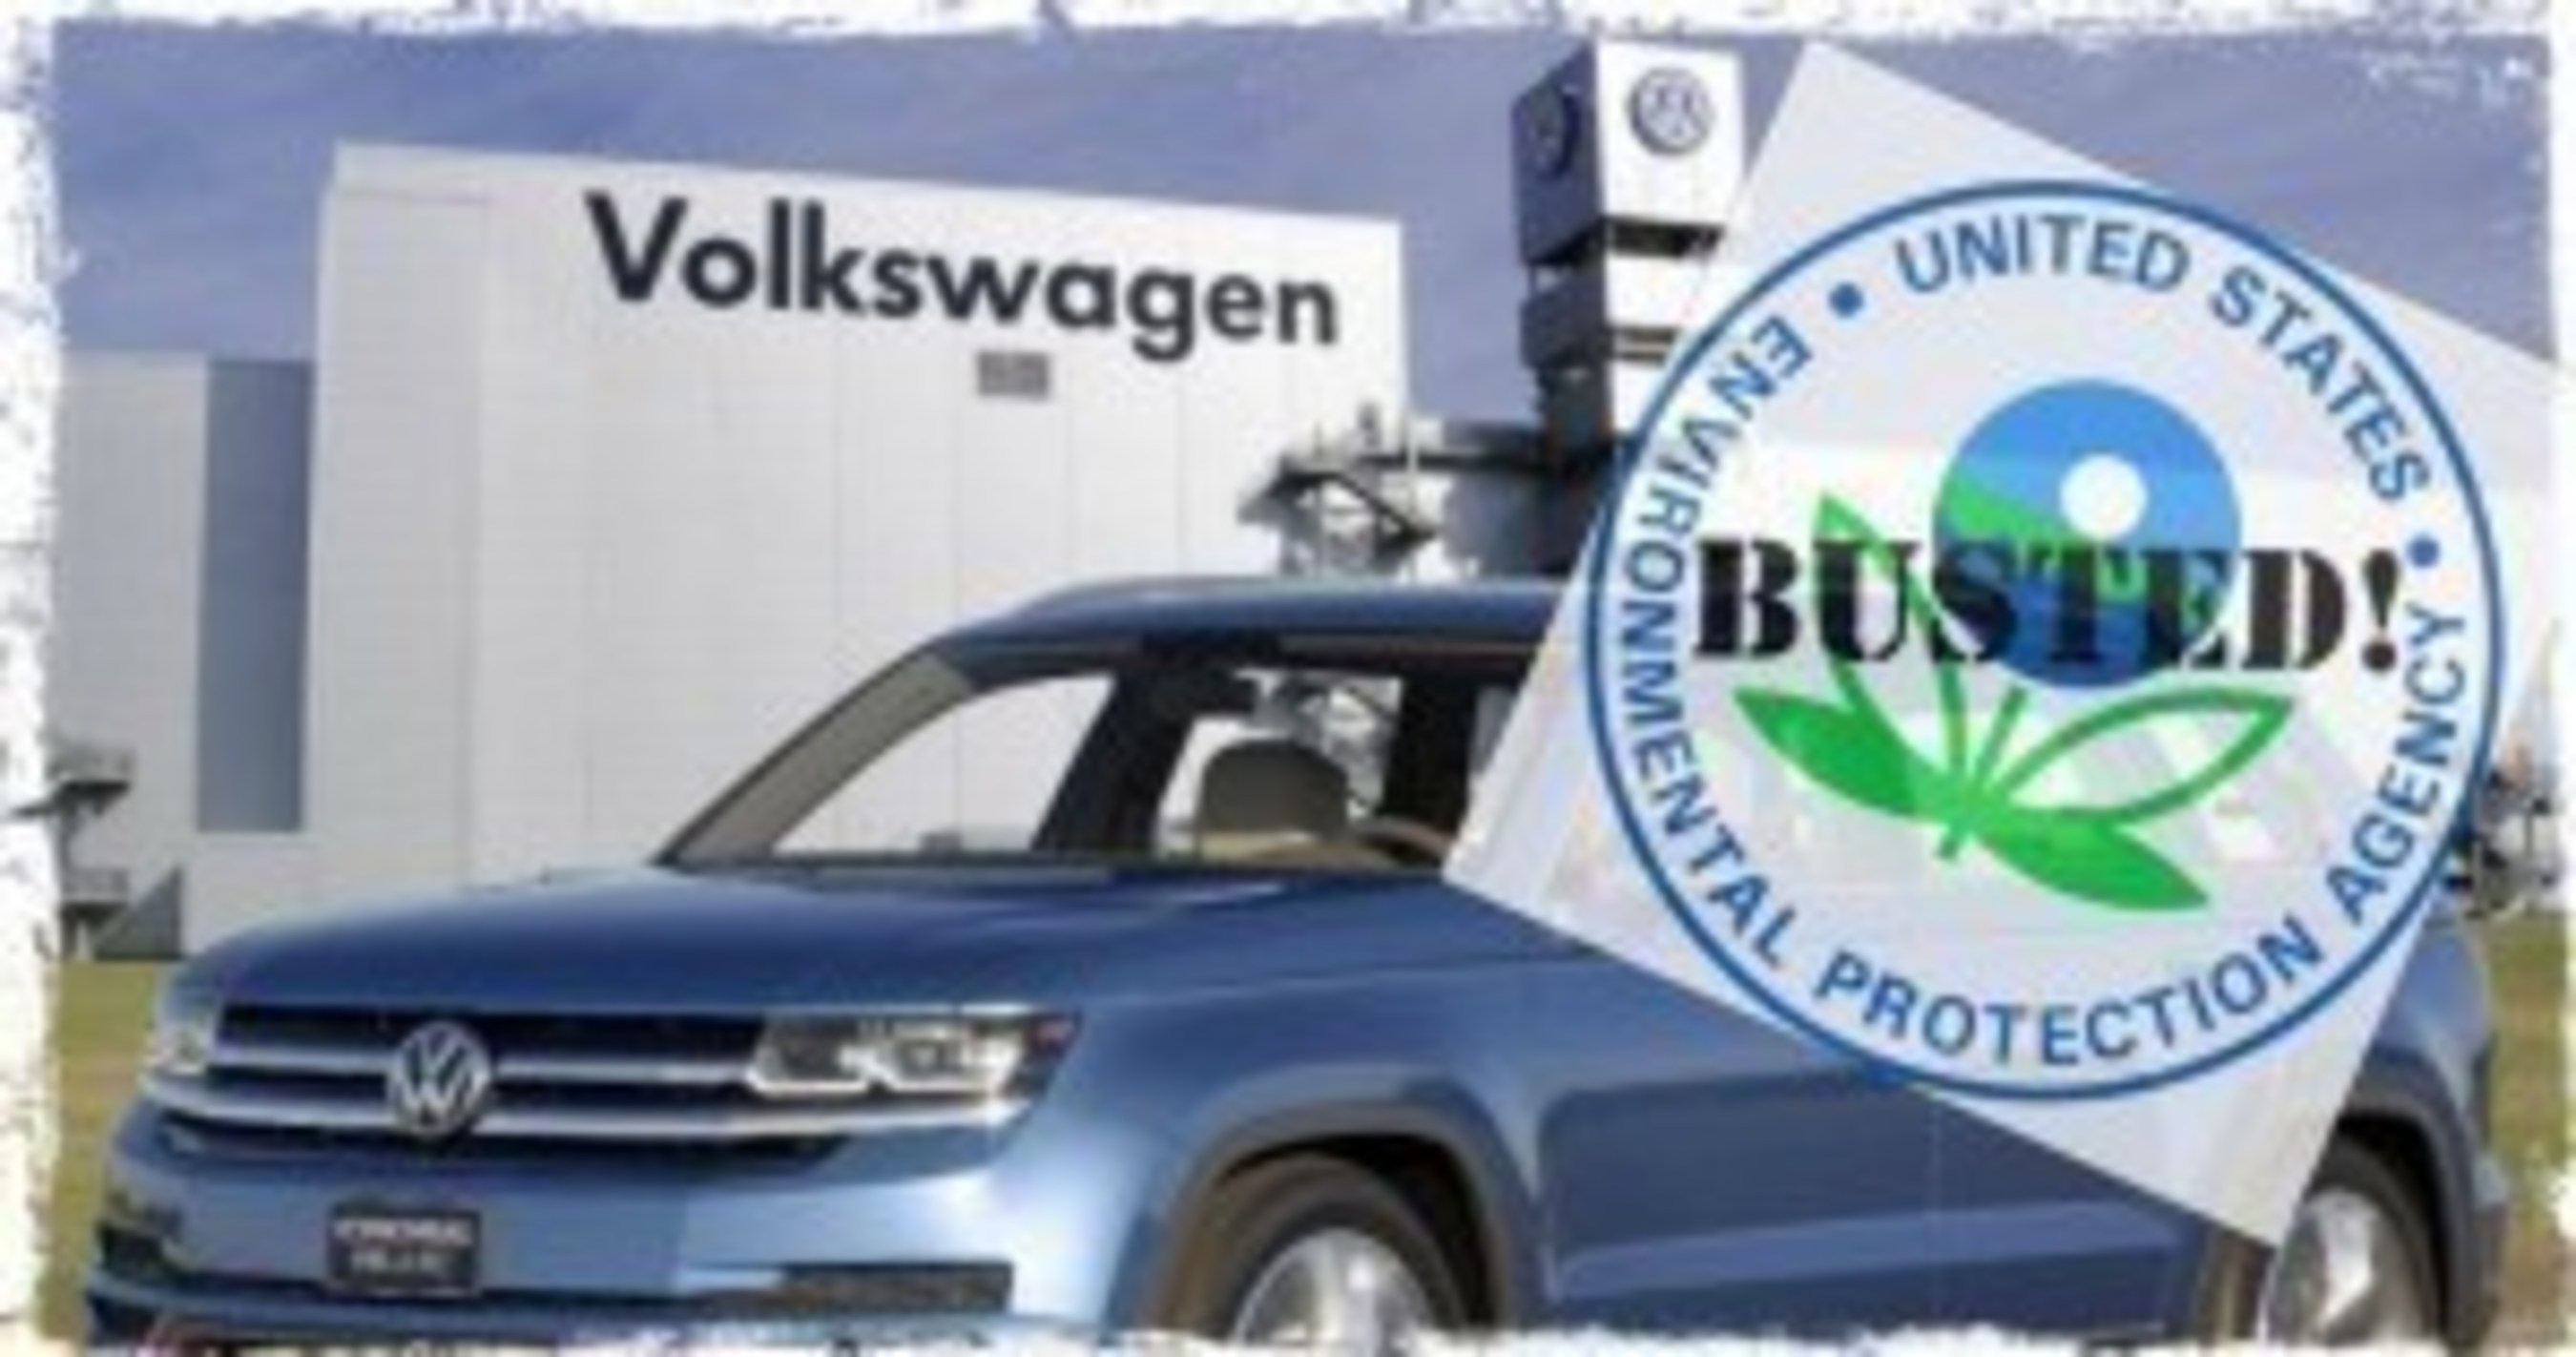 The European Commission Wants Clarity on The Volkswagen Emission Scandal